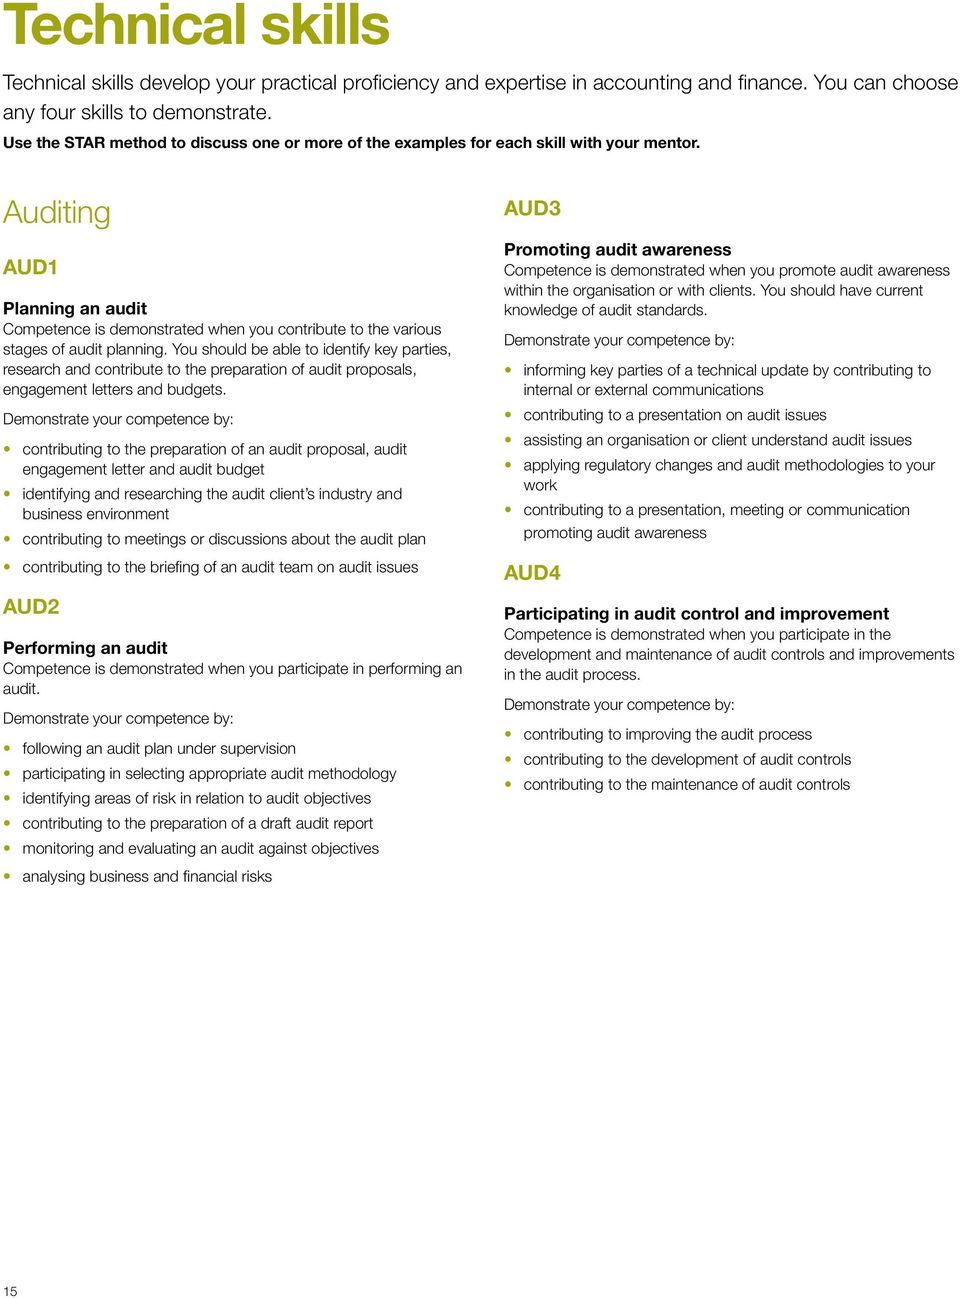 Auditing AUD1 Planning an audit Competence is demonstrated when you contribute to the various stages of audit planning.